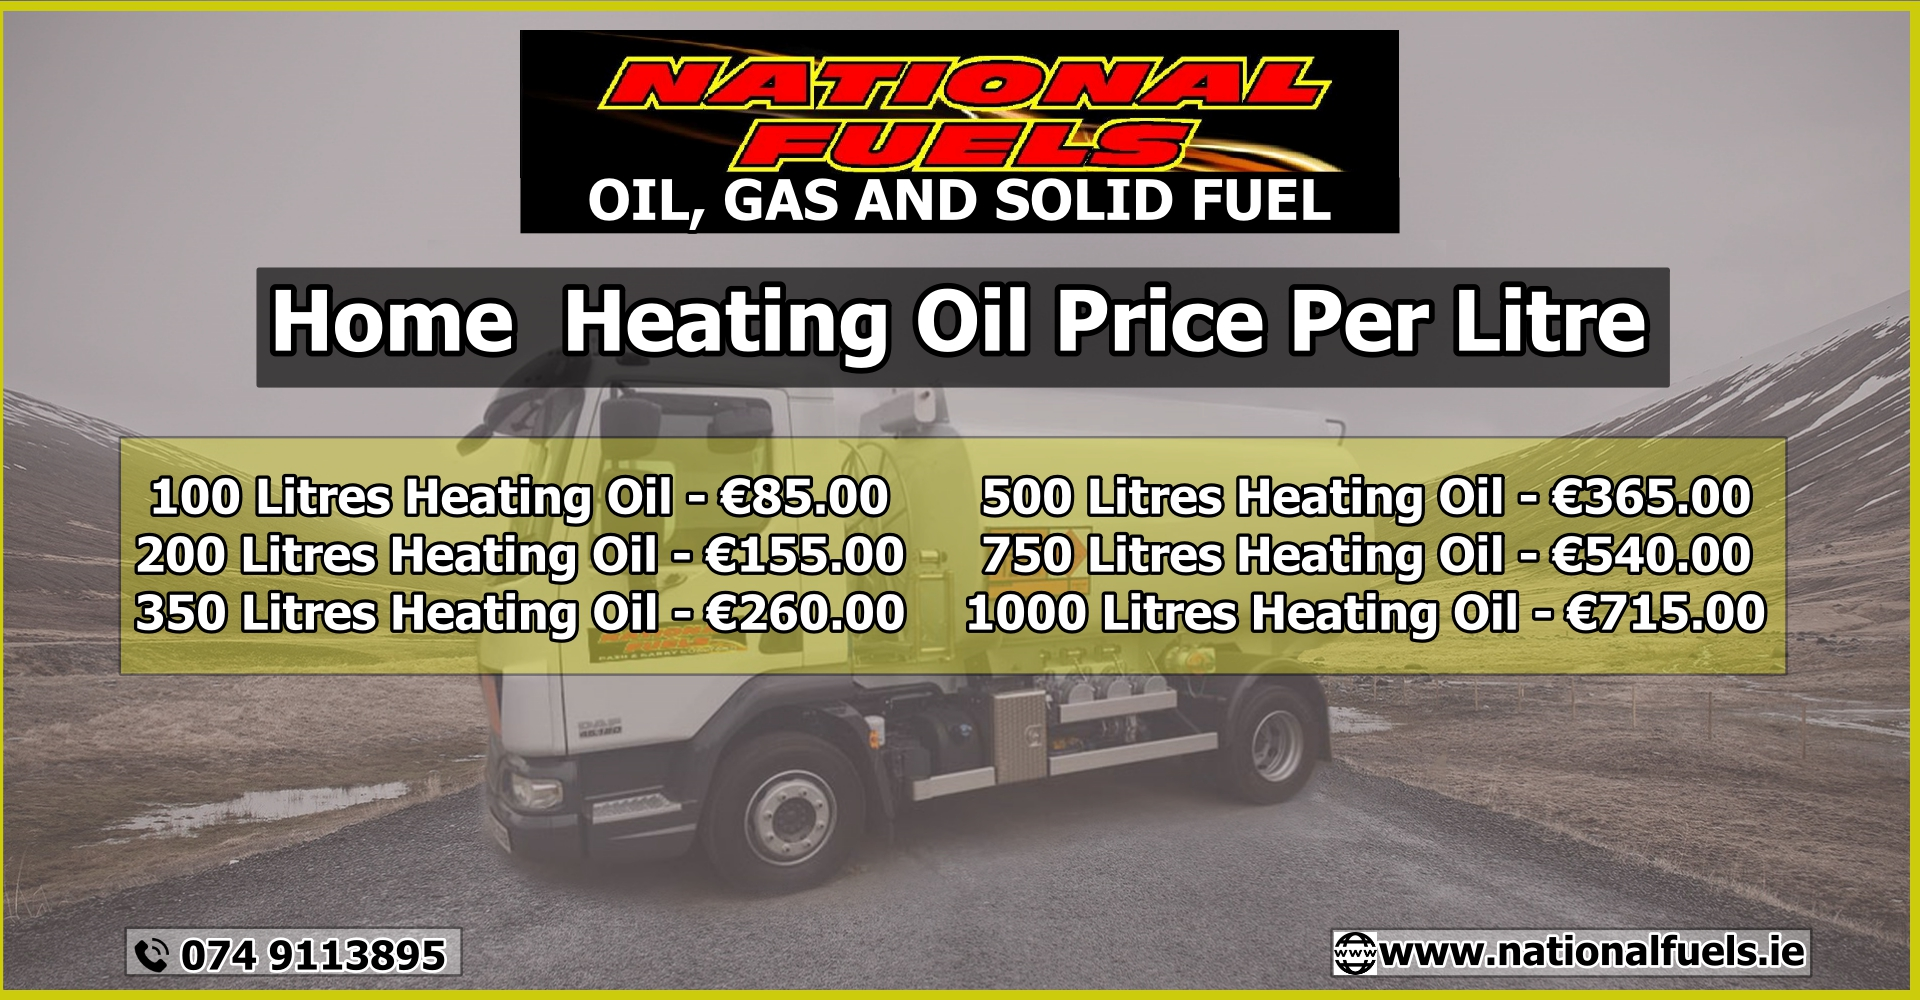 national fuels April 2.jpg